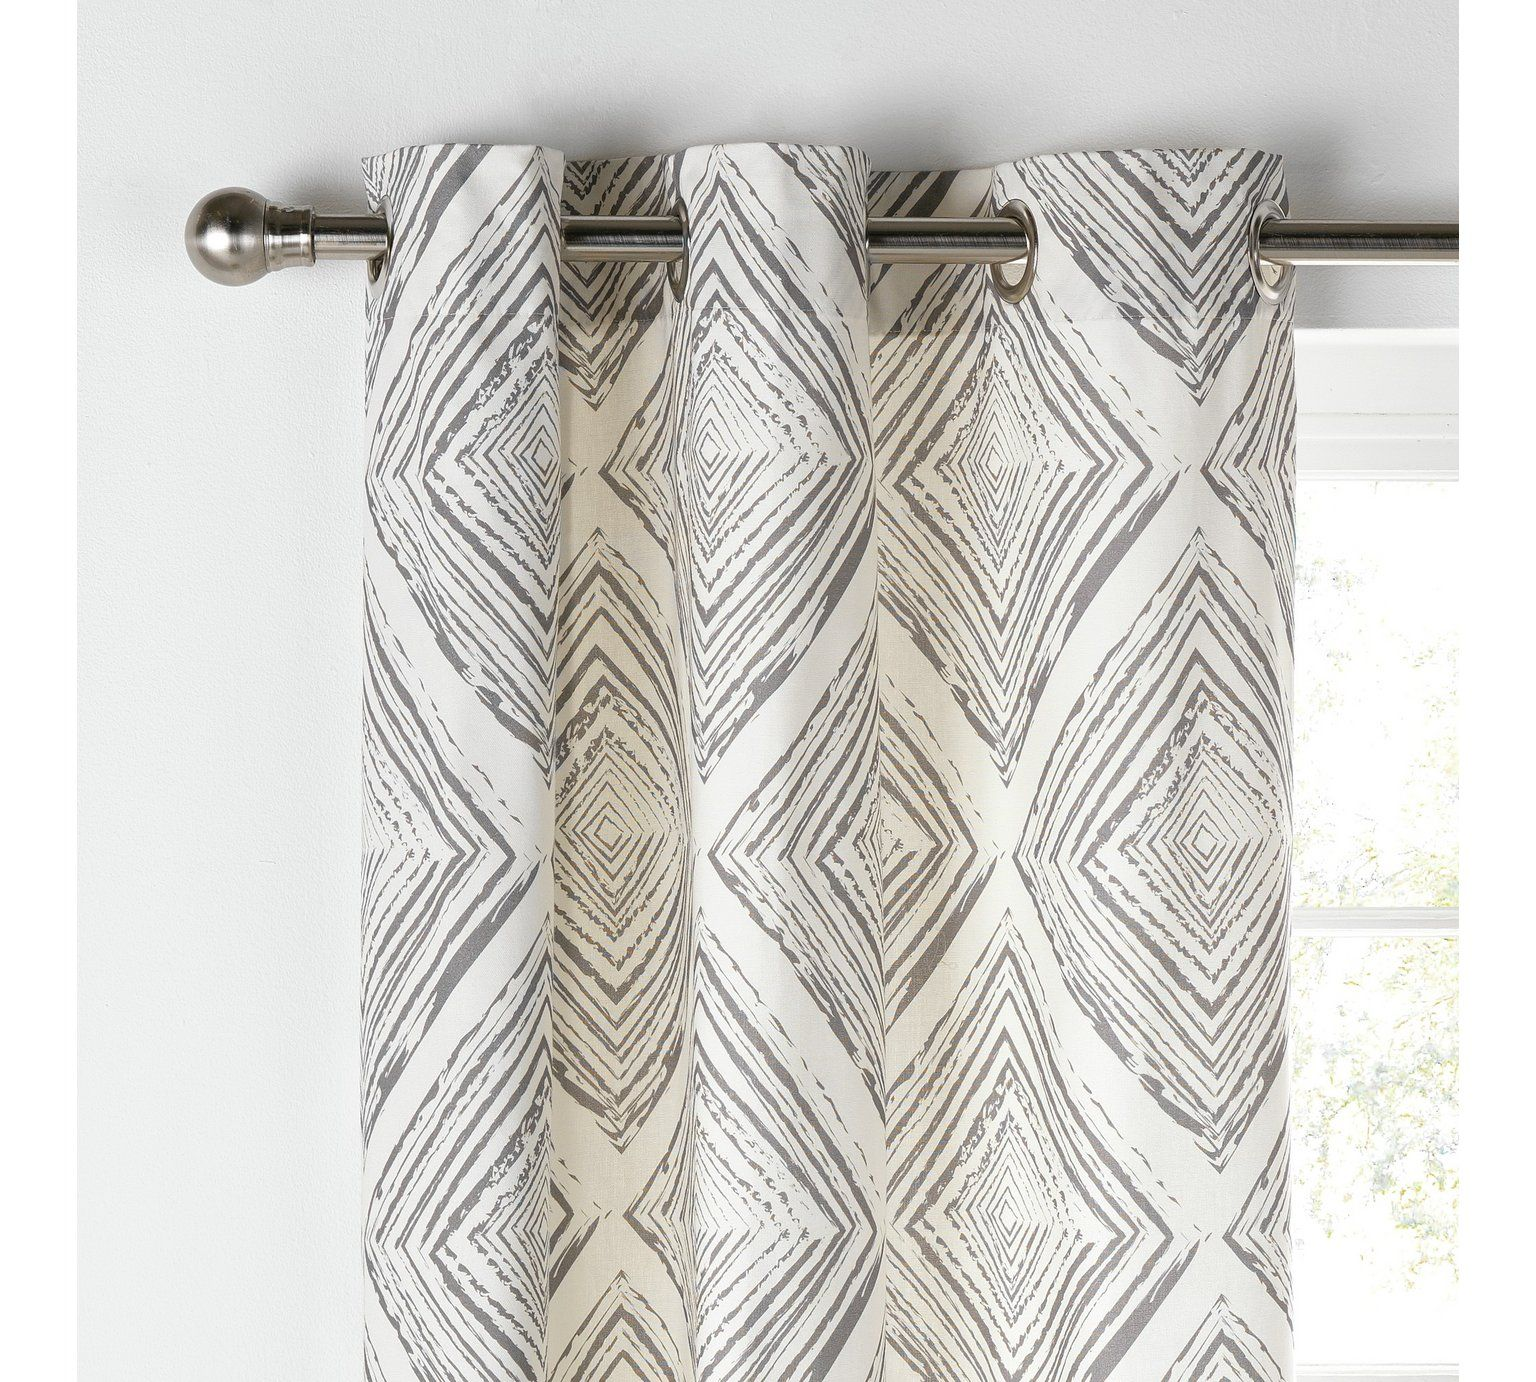 Buy Collection Diamond Distressed Lined Curtains 117x137 Grey At Argos Co Uk Visit Argos Co Uk To Shop Online For Curt Lined Curtains Curtains Grey Curtains